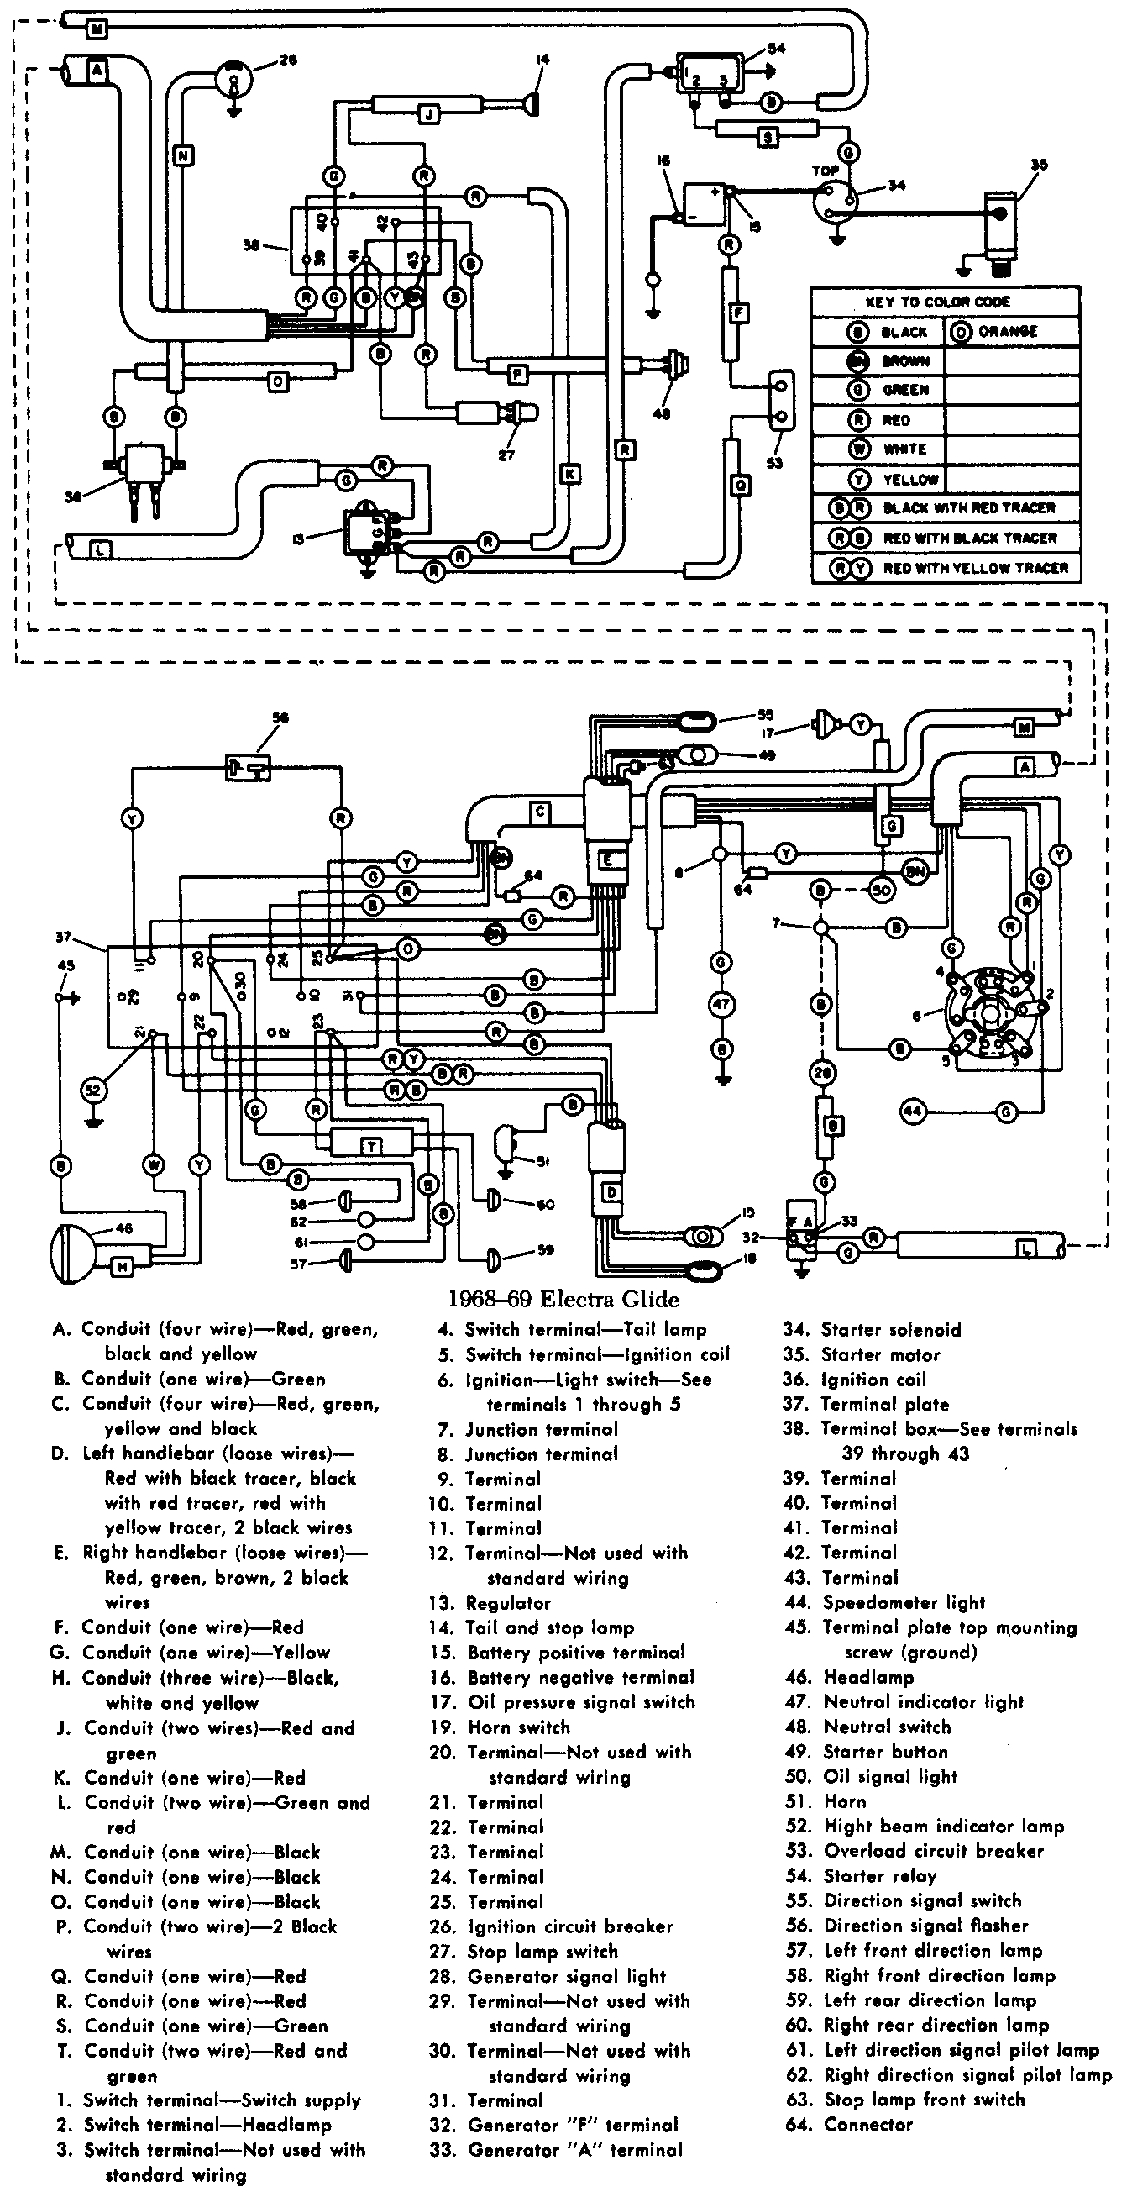 Harman Kardon Harley Davidson Radio Wiring Diagram Flhtc Wiring Diagram Blog Wiring Diagram